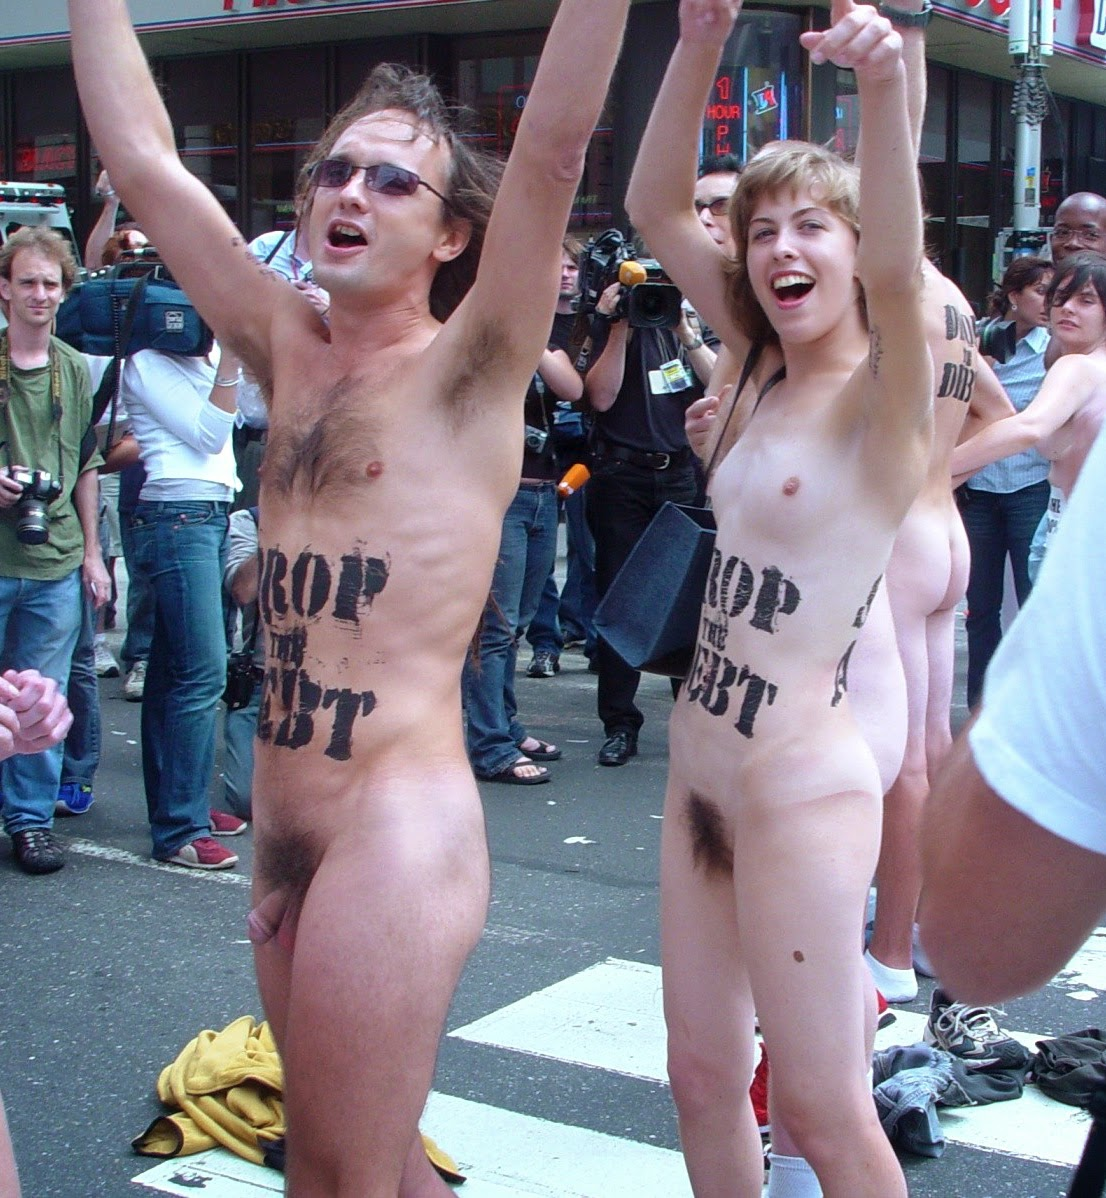 Nudism - Photo - HQ : Naked Protesters